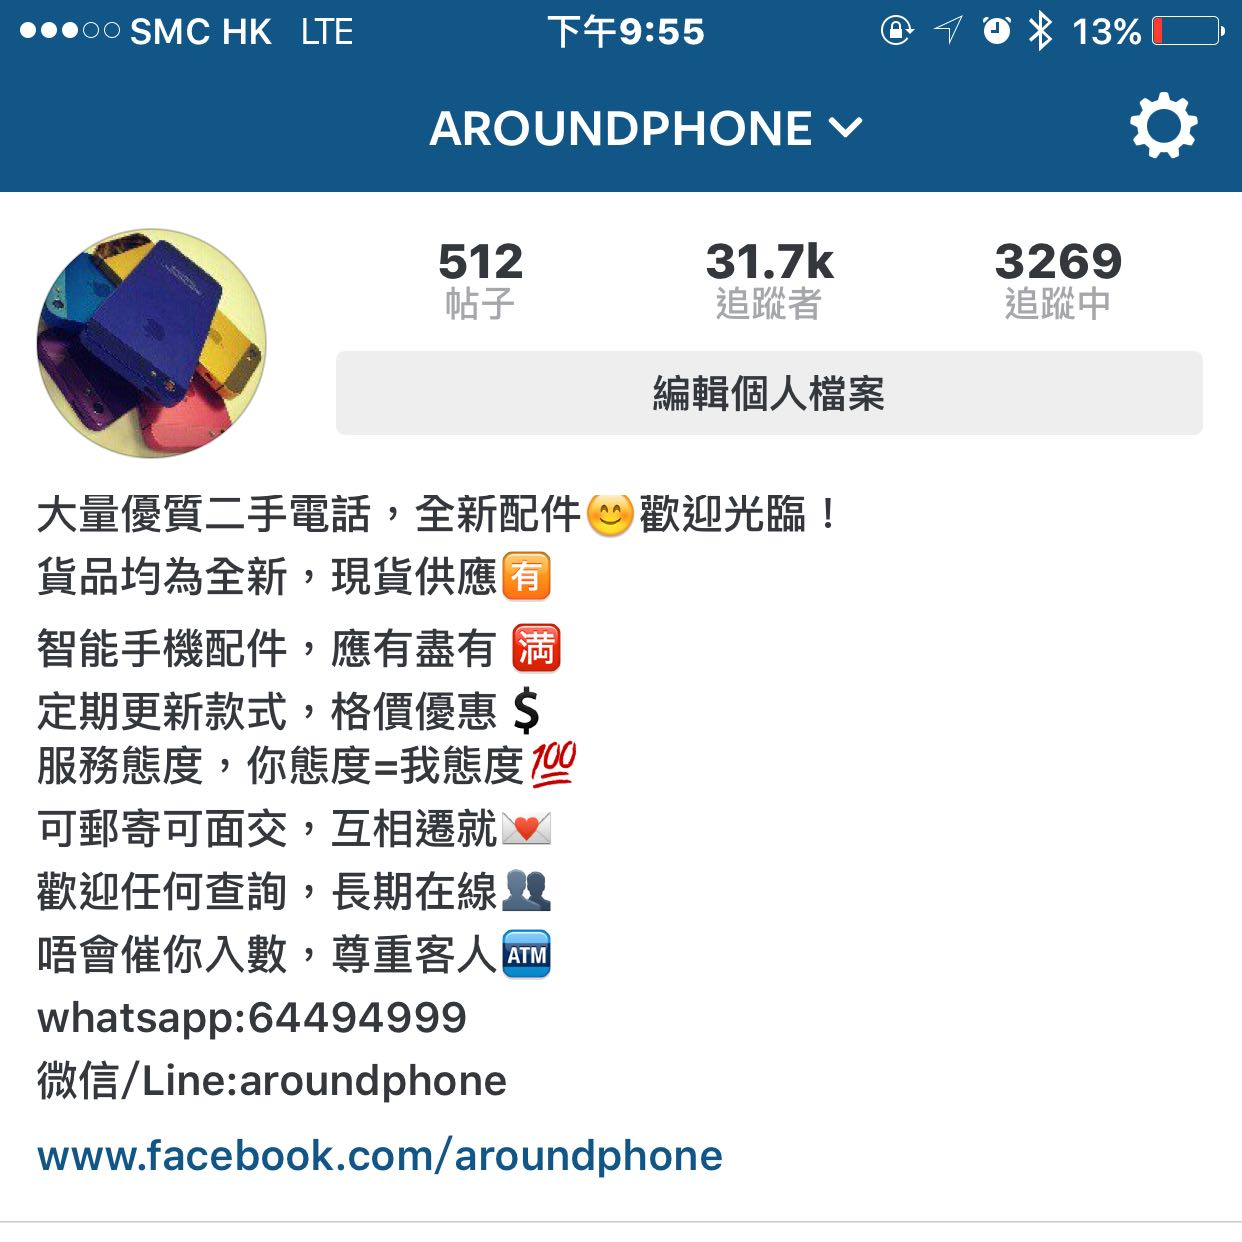 aroundphone